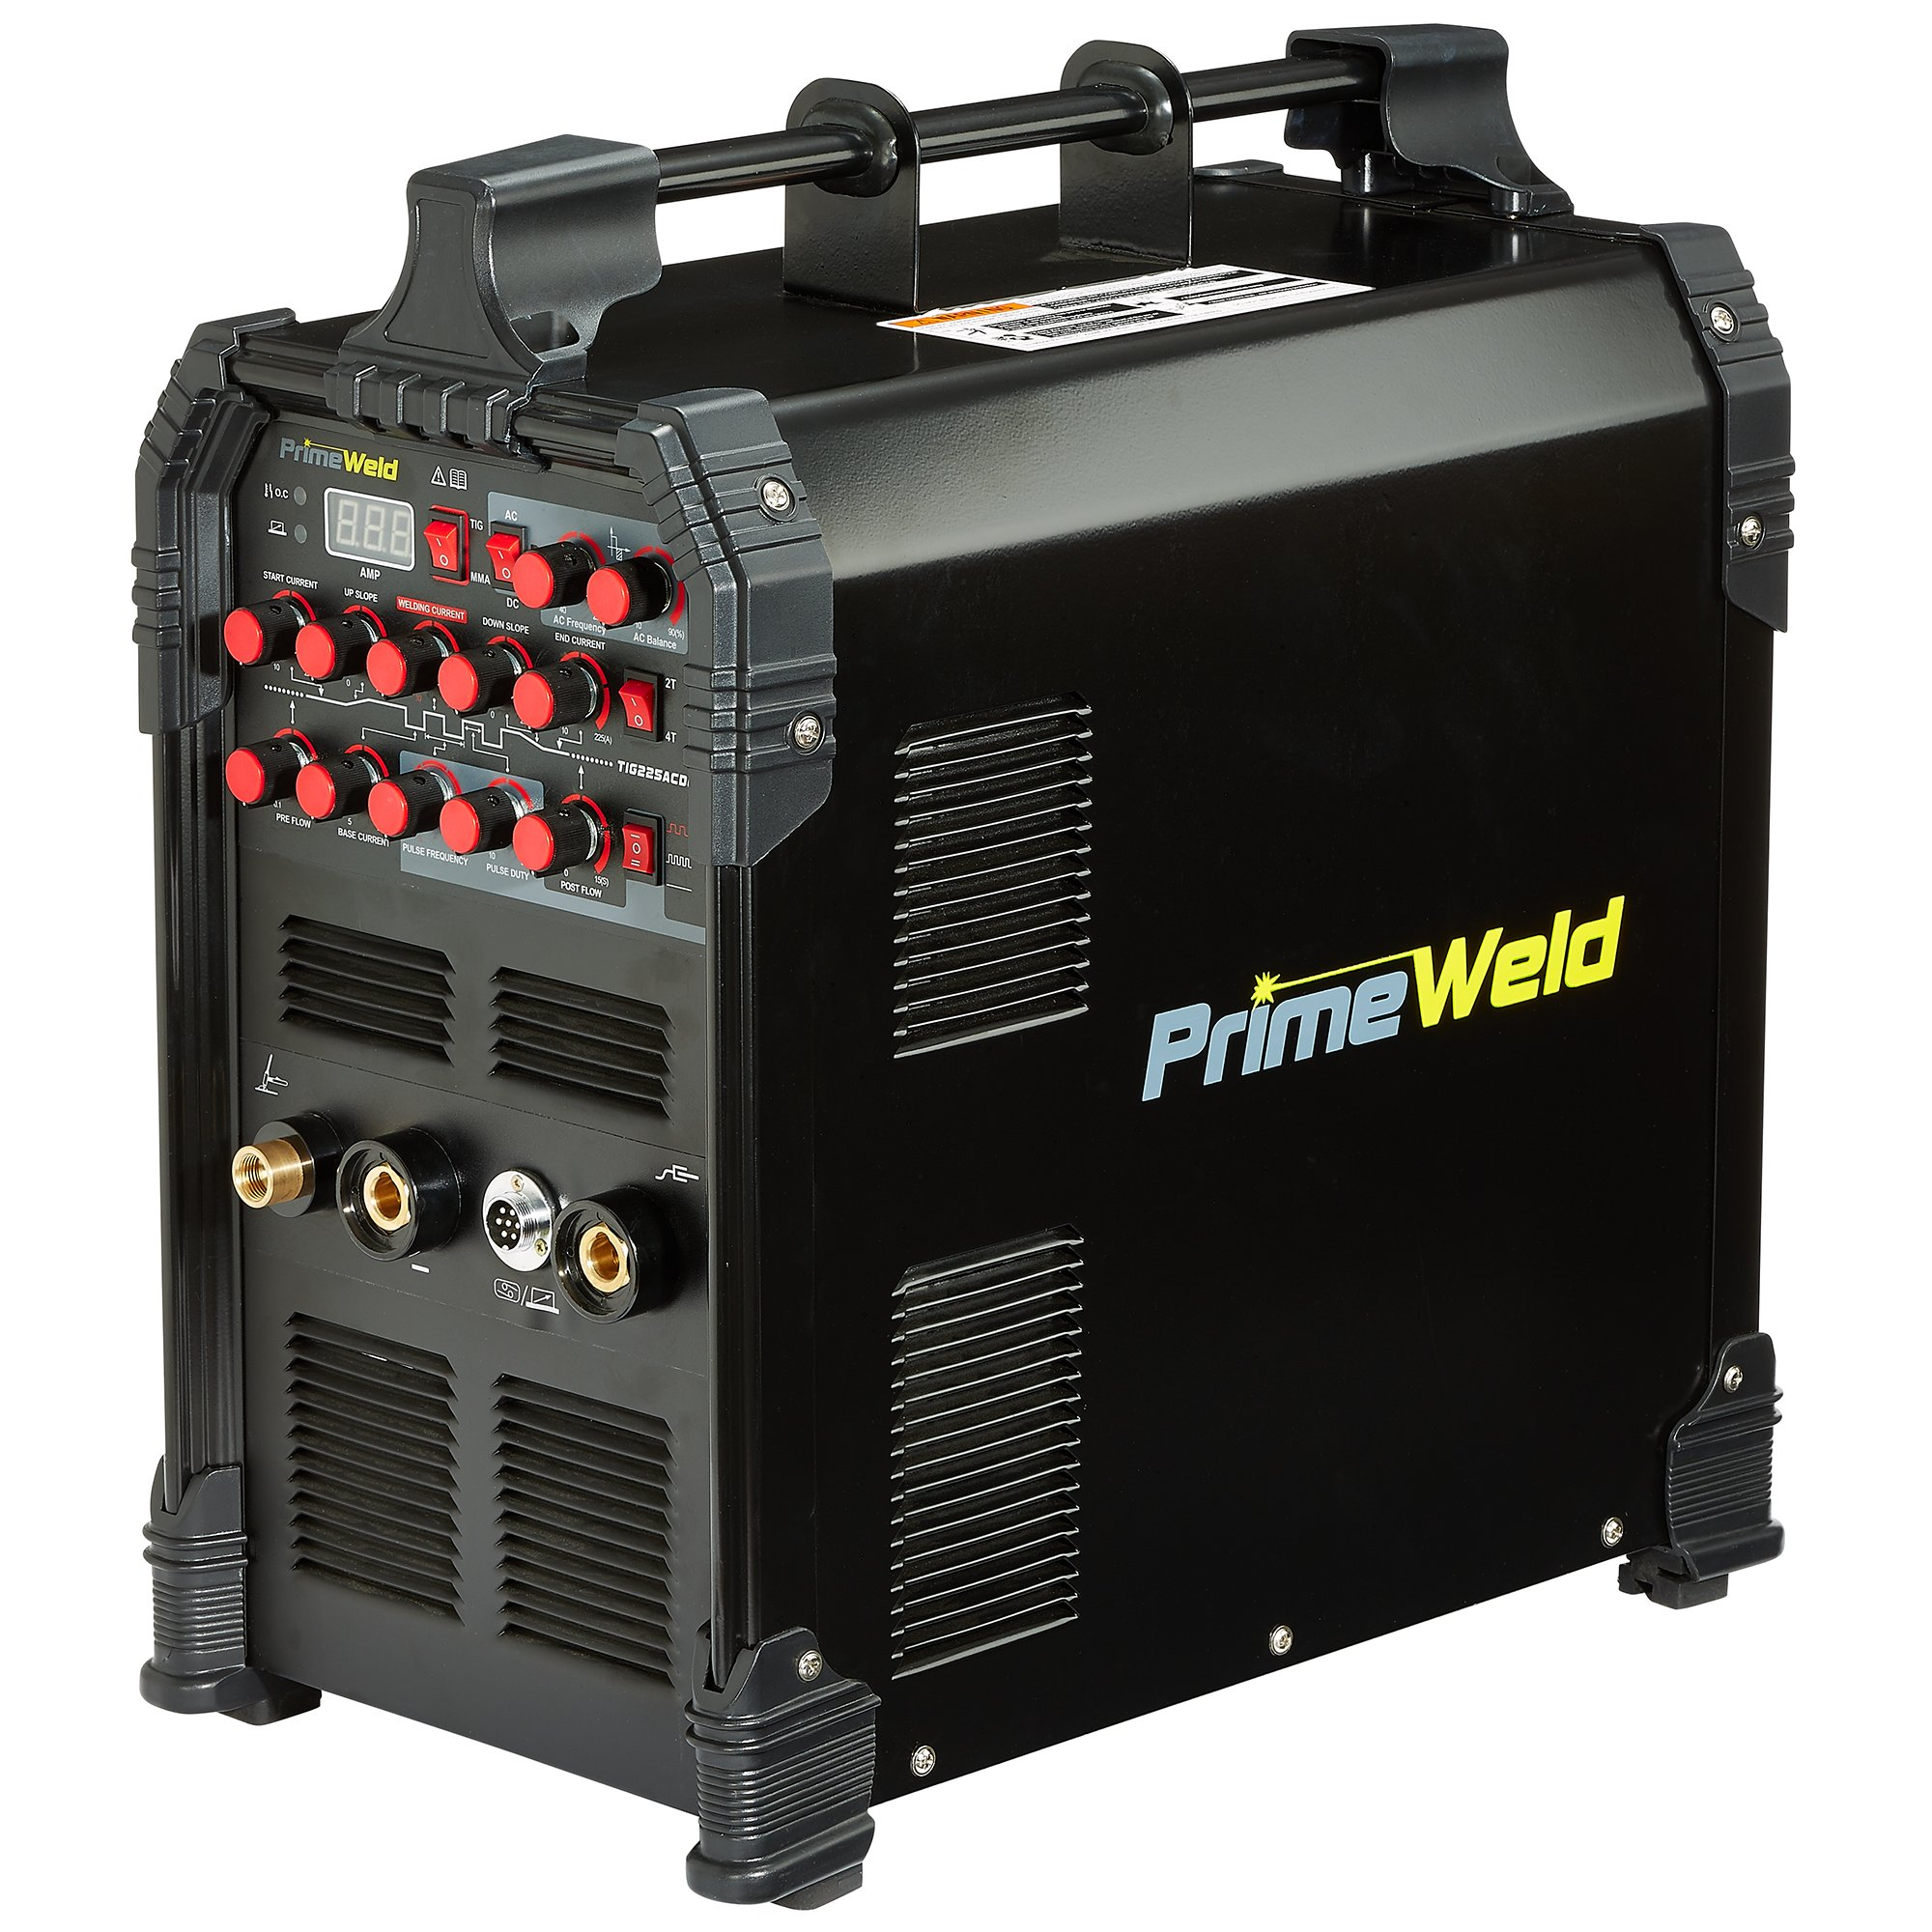 PRIMEWELD TIG225X 225 Amp IGBT AC DC Tig/Stick Welder with Pulse CK17 Flex Torch and Cable 3 Year Warranty by PRIMEWELD